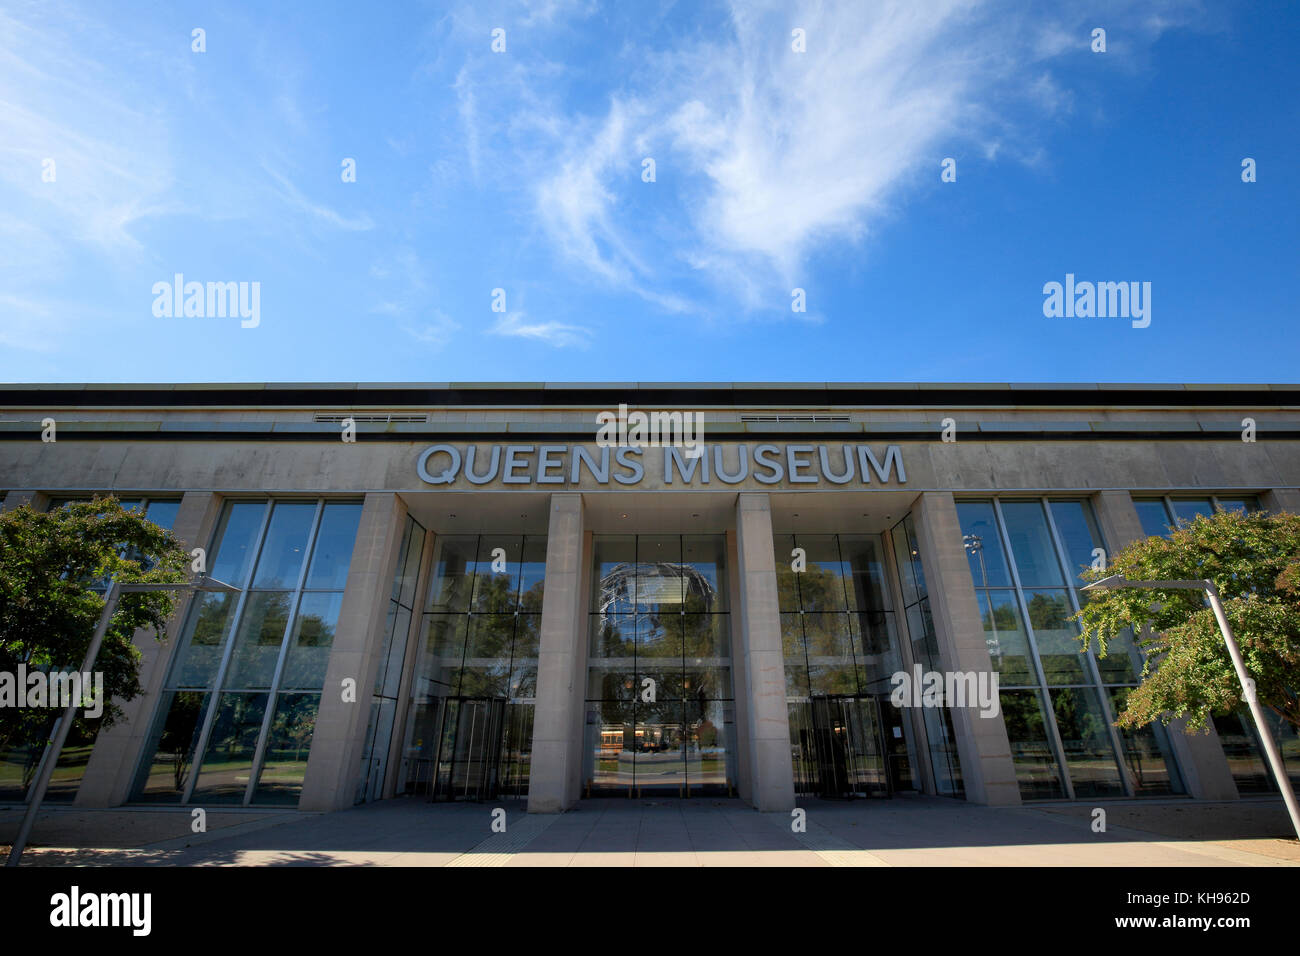 Exterior of the Queens Museum in Flushing Meadows Corona Park, New York City - Stock Image